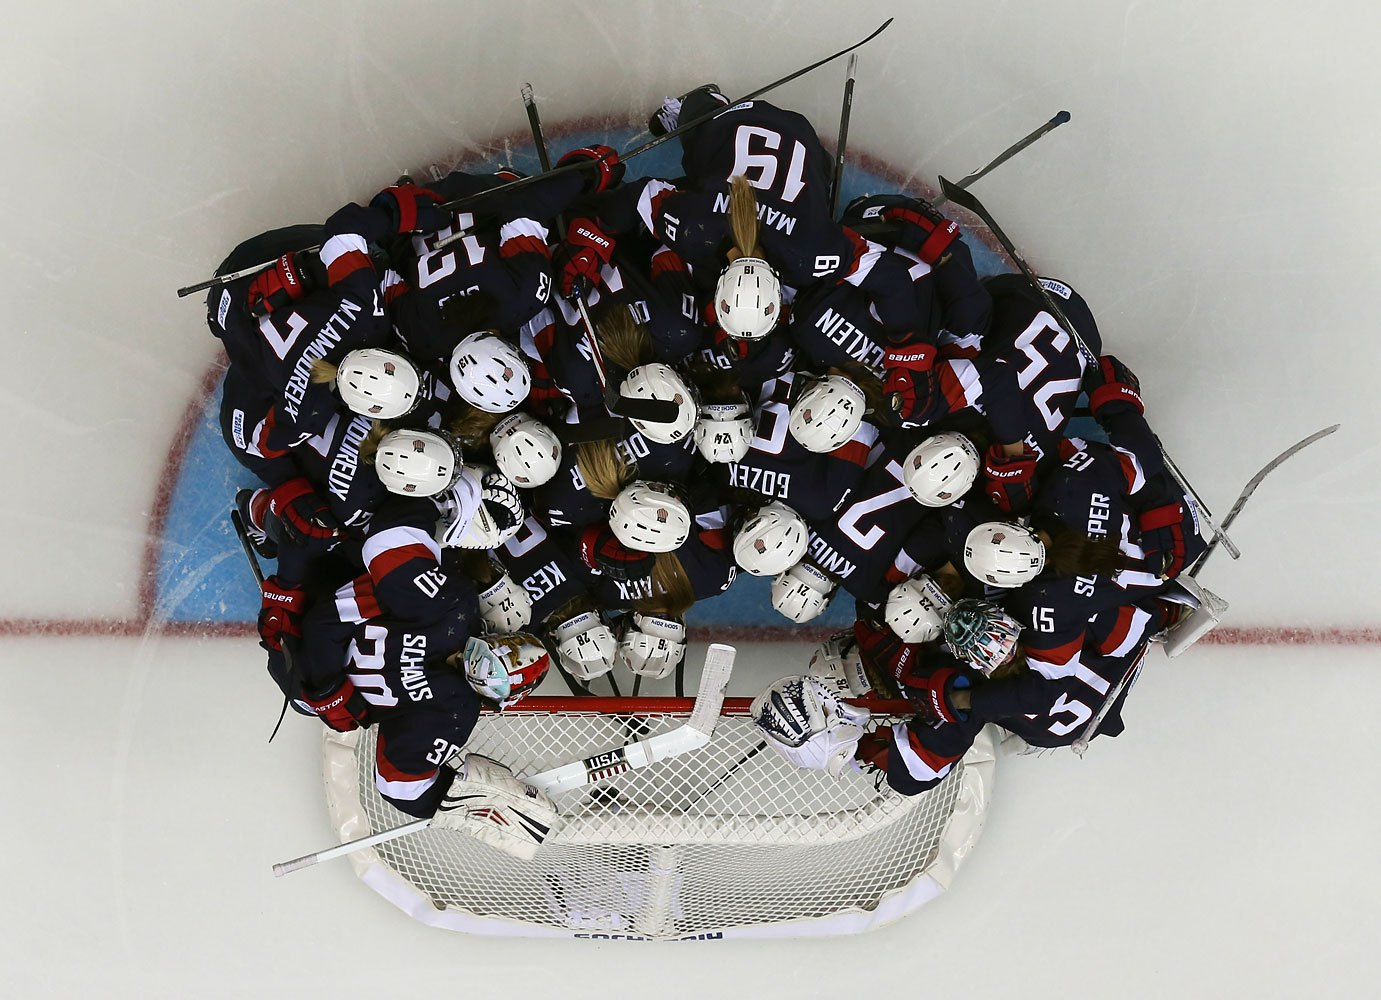 Members of USA's women's ice hockey team huddle around USA's goalie Molly Schaus before their women's preliminary round hockey game against Switzerland at the Sochi 2014 Winter Olympic Games Feb. 10, 2014.